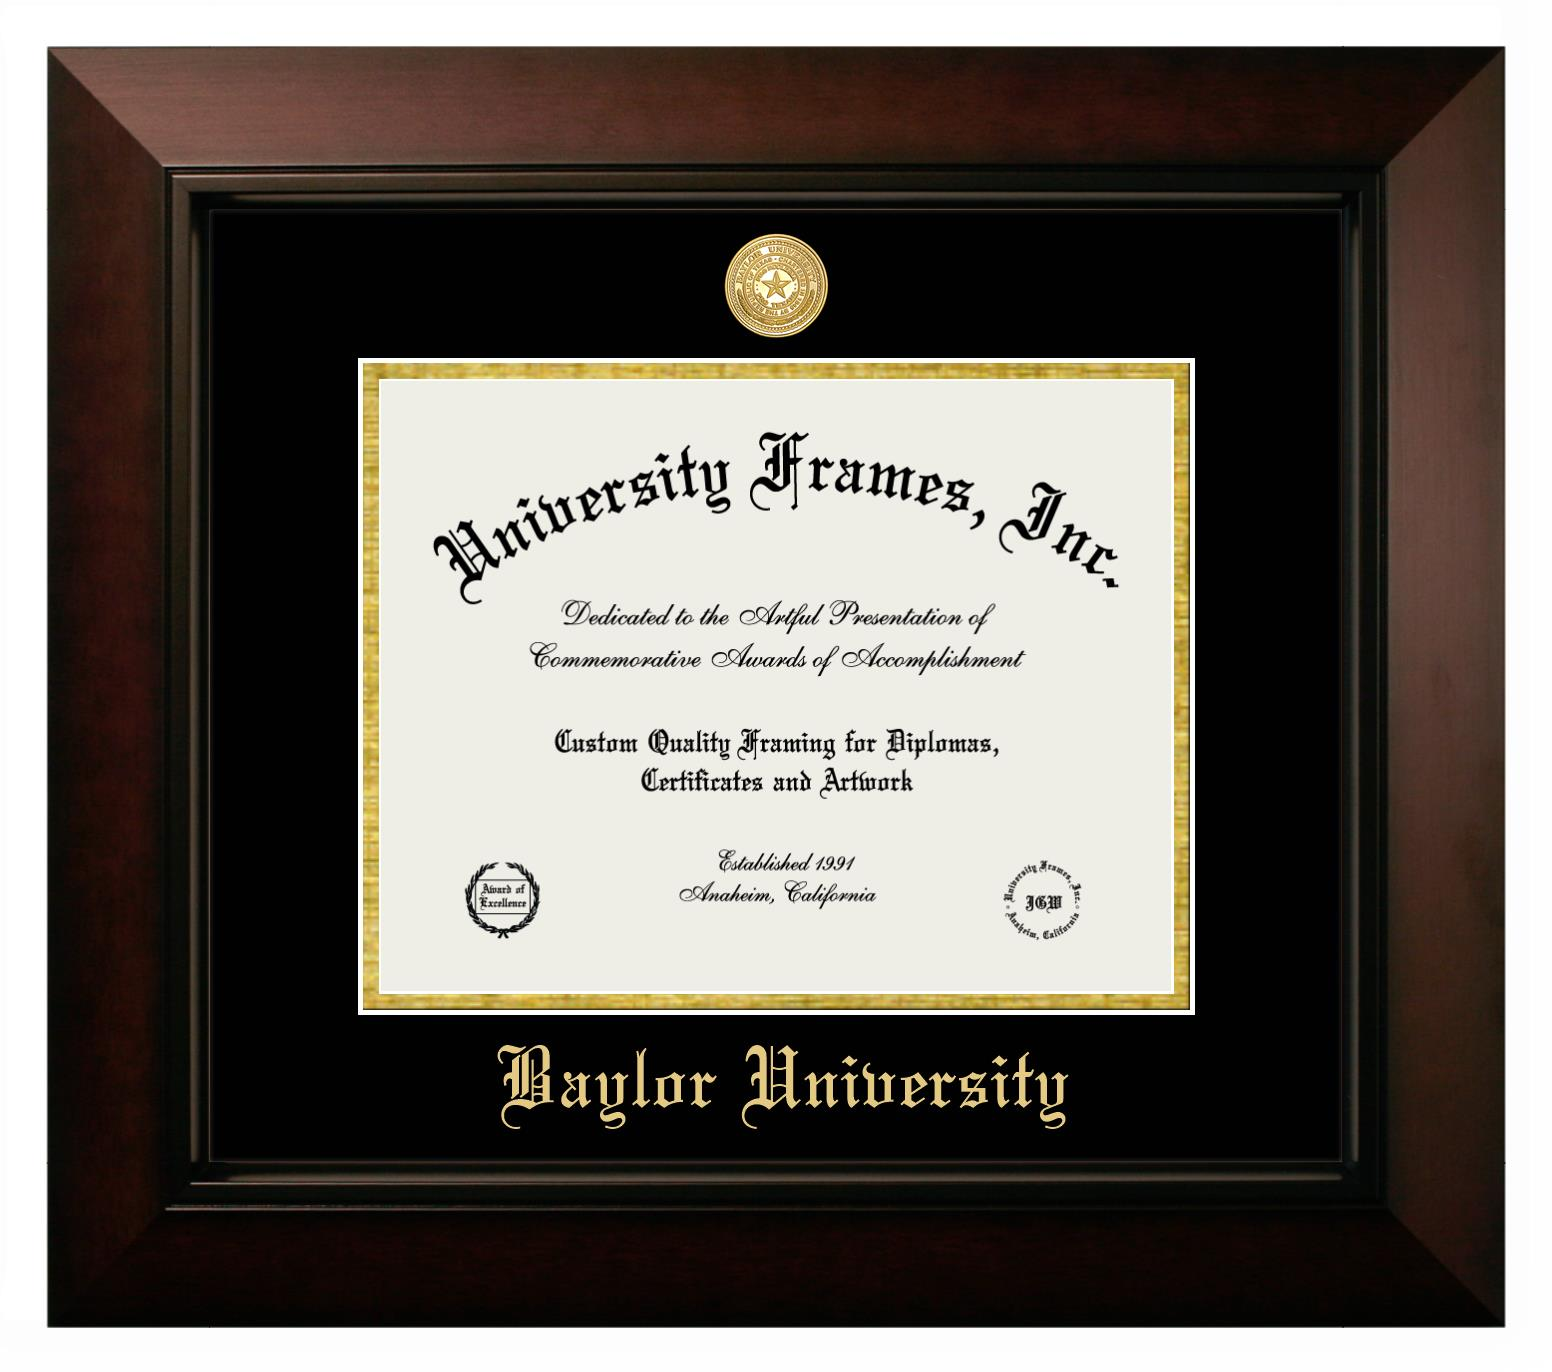 Baylor University Diploma Frame In Legacy Black Cherry With Black Gold Mats